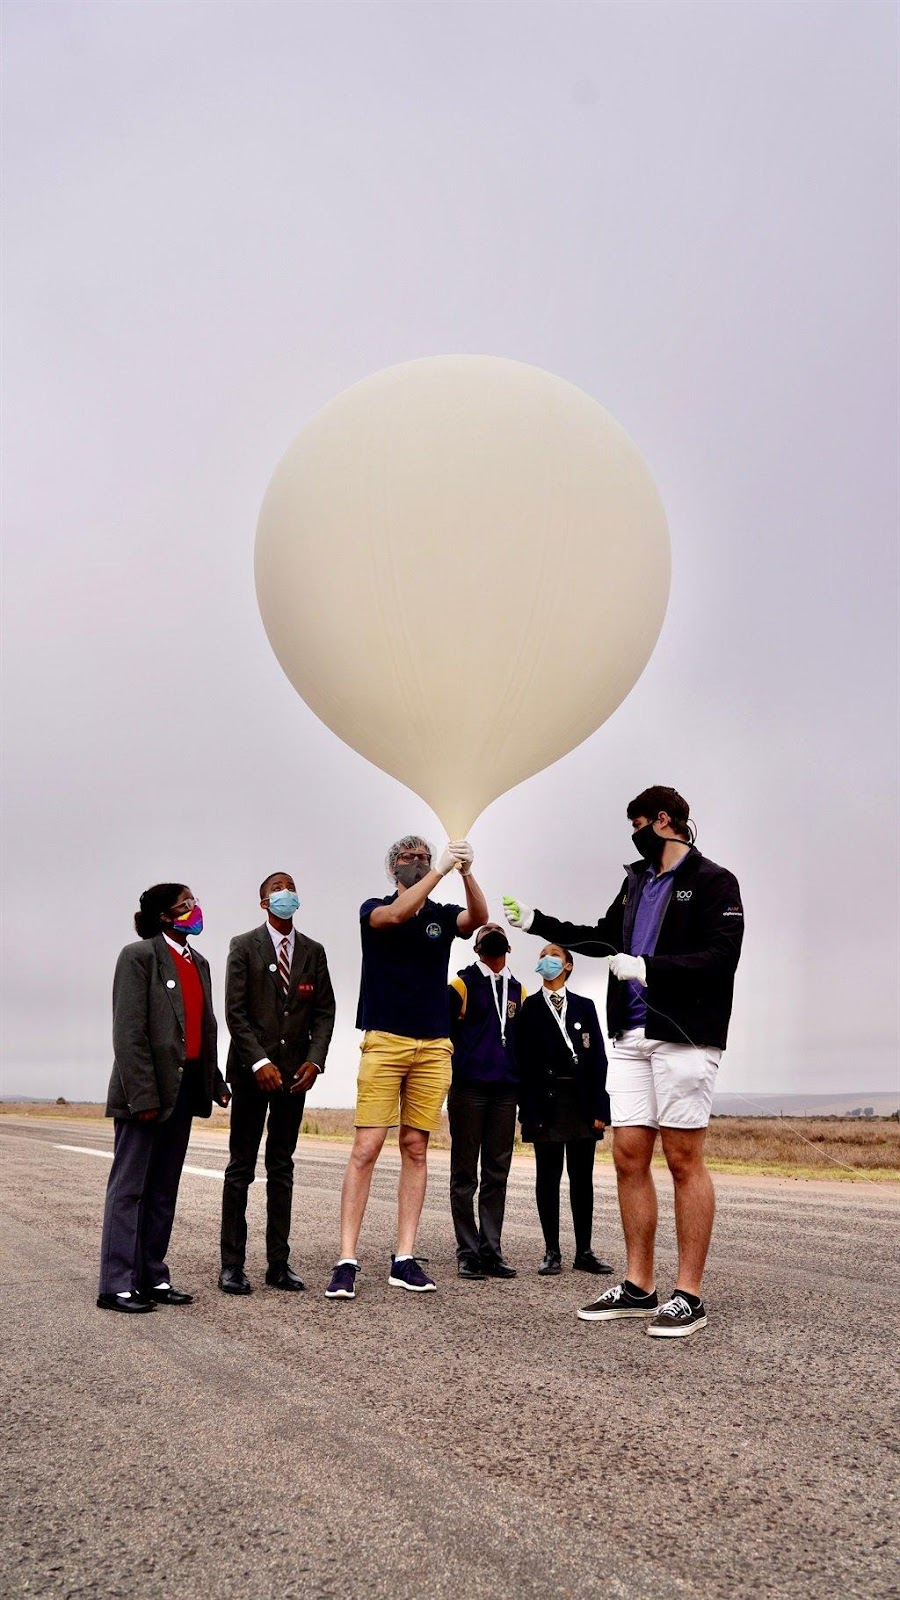 A group of people holding a balloon  Description automatically generated